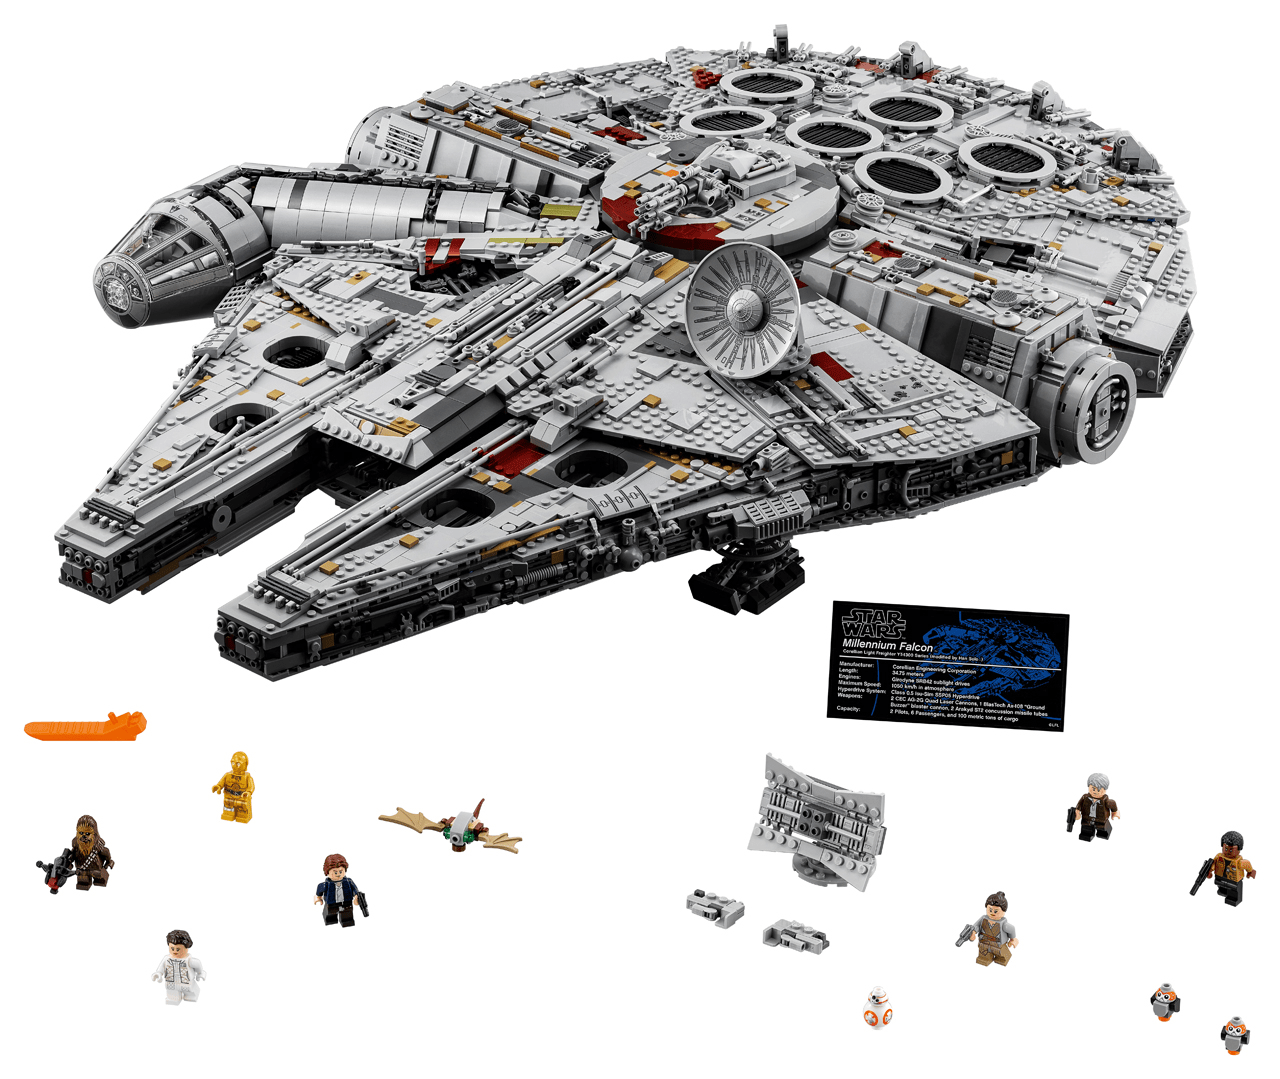 Grab These Retiring Lego Star Wars Sets While You Still Can